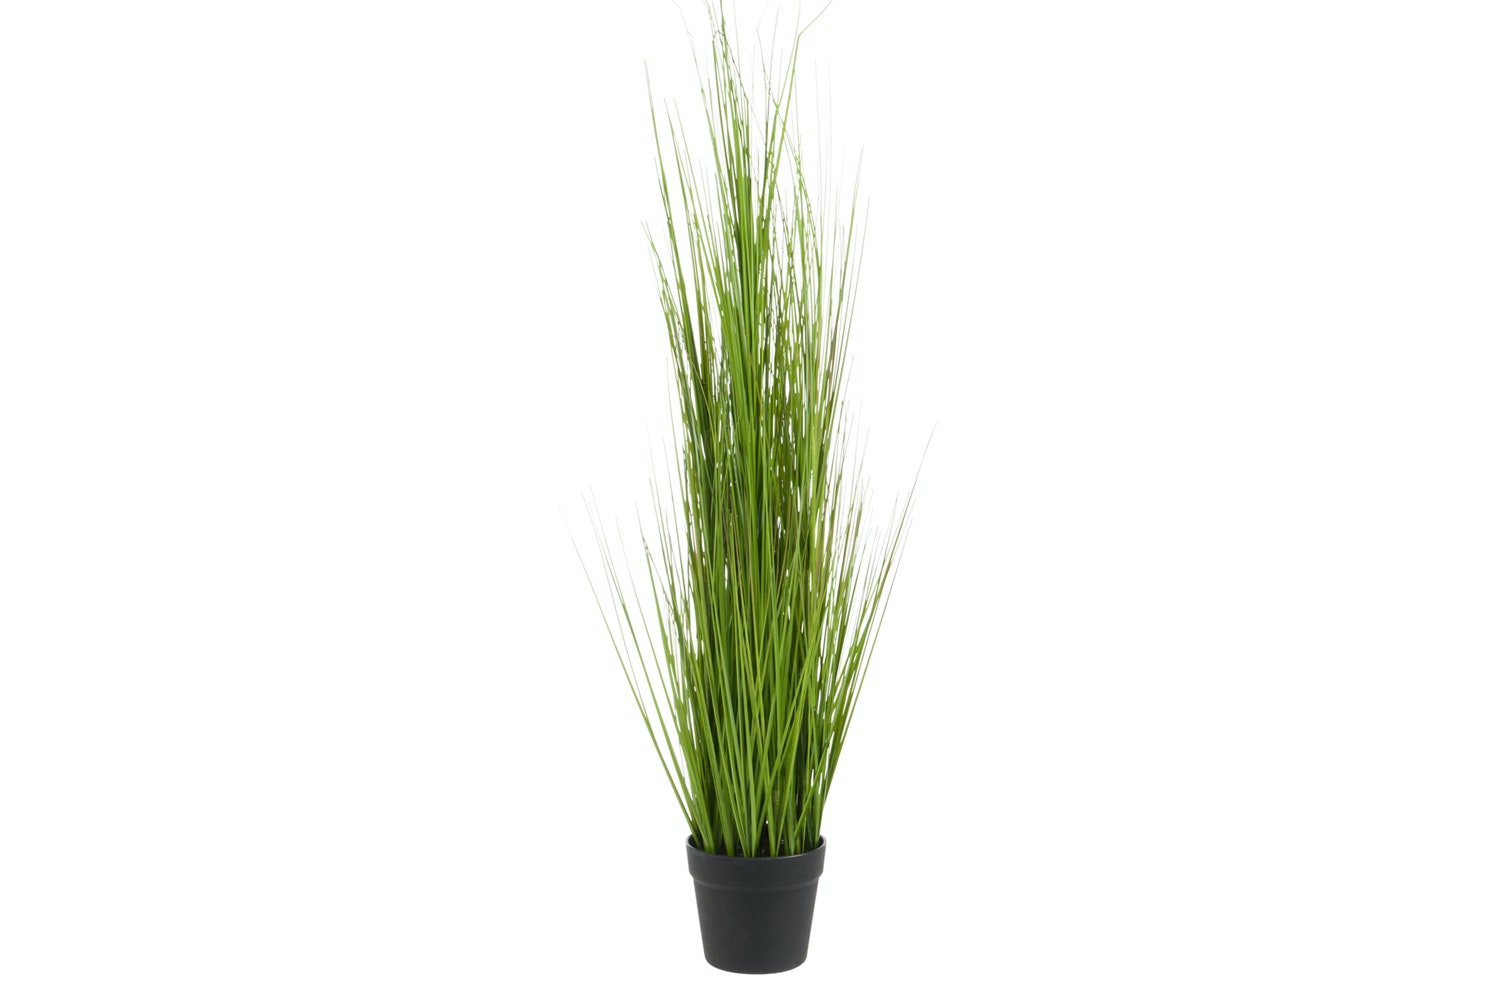 Tall Grass In Pot